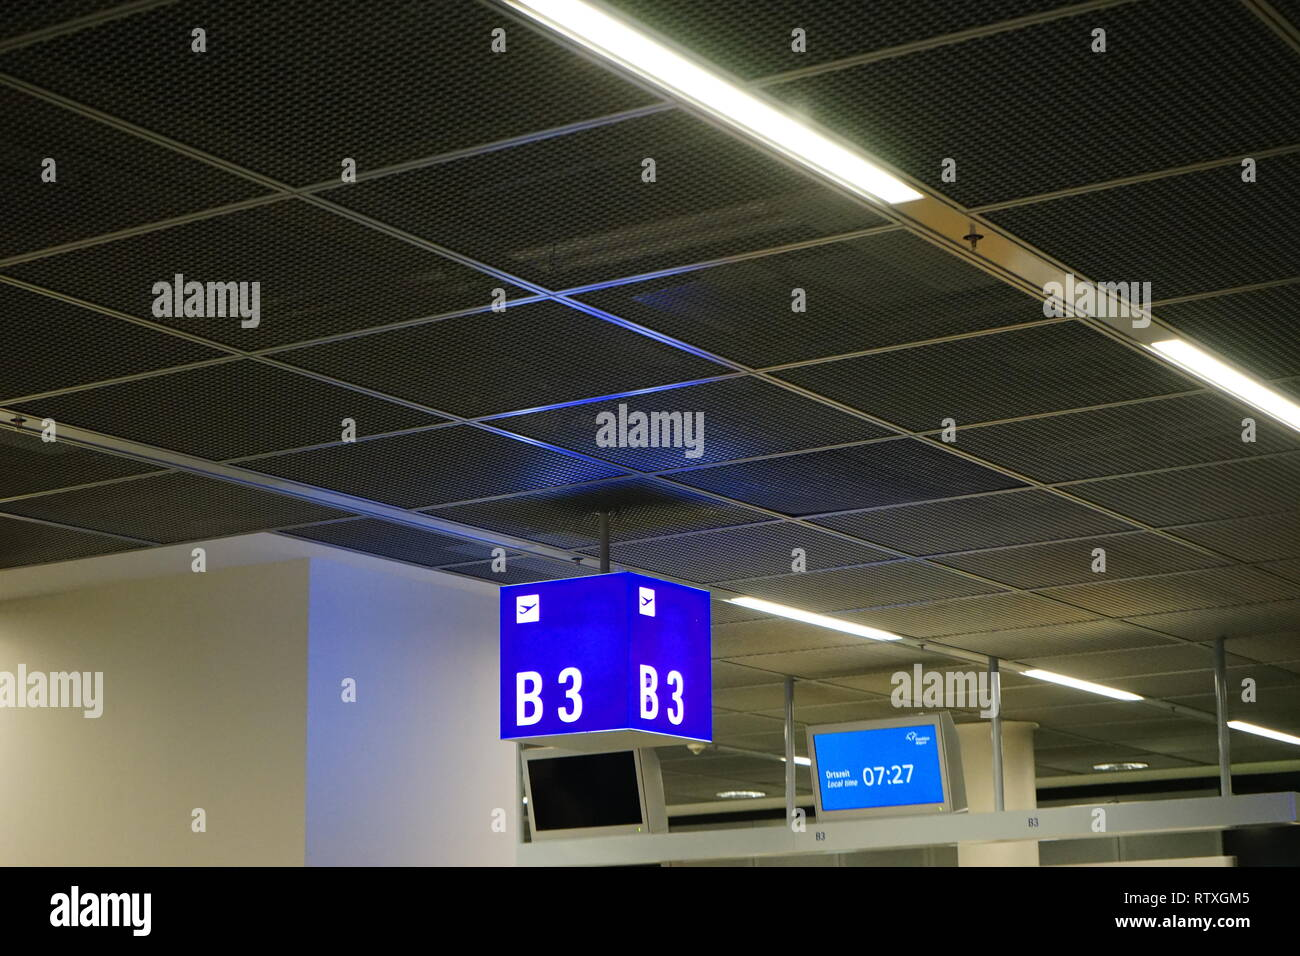 Flughafen, Airport, Frankfurt am Main, Germany - Stock Image